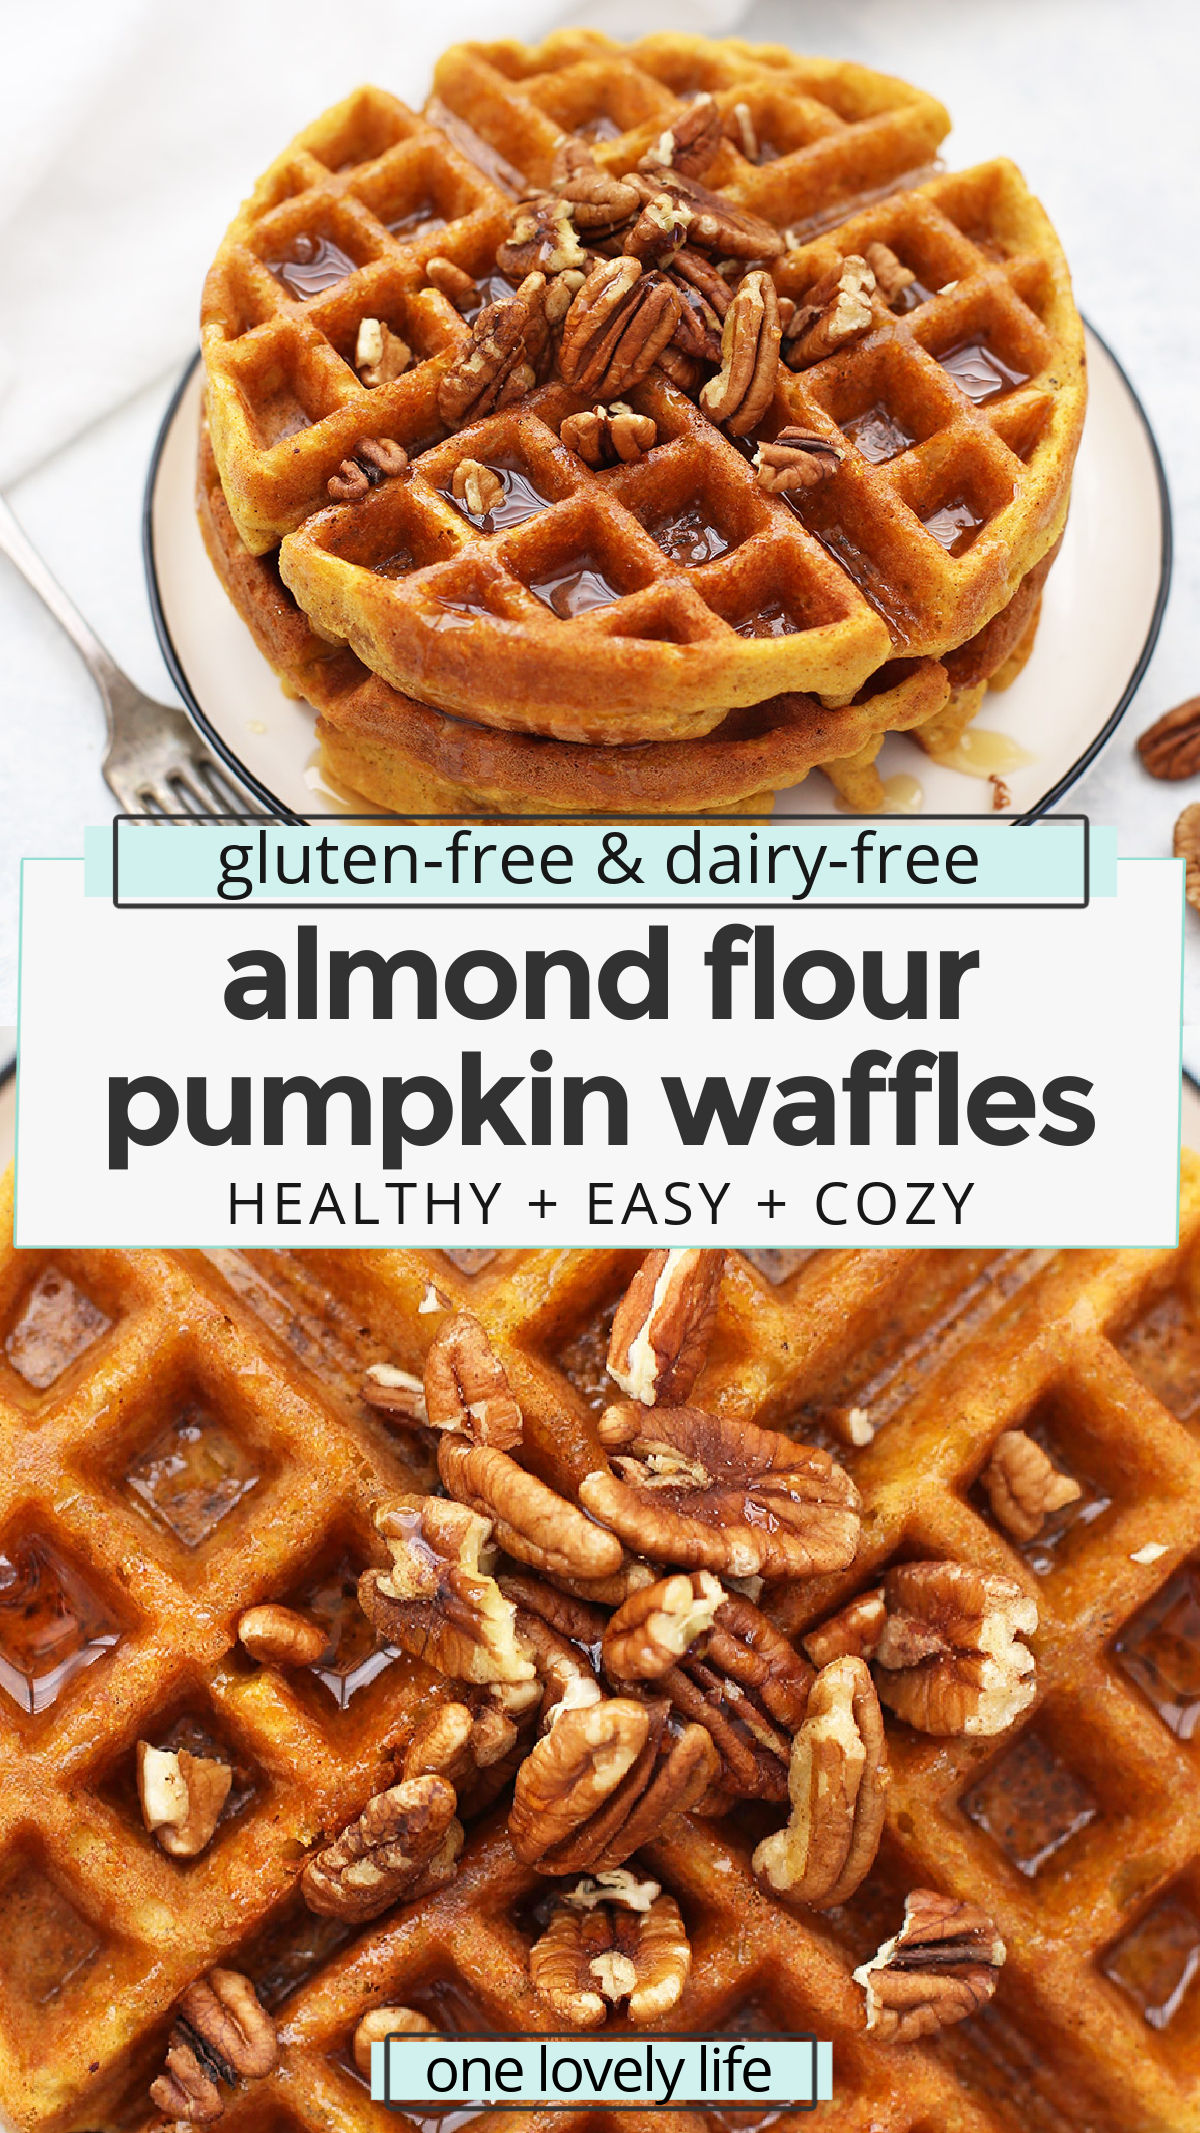 Almond Flour Pumpkin Waffles - These paleo pumpkin waffles are naturally gluten free, and completely delicious. Crispy on the outside and fluffy on the inside. // Paleo waffle recipe // almond flour waffle recipe // gluten free pumpkin waffle recipe // gluten free pumpkin waffles recipe // paleo pumpkin waffles recipe // almond flour waffles recipe // pumpkin waffles recipe // paleo breakfast // paleo pumpkin recipes // gluten free breakfast // healthy pumpkin waffles #almondflour #waffles